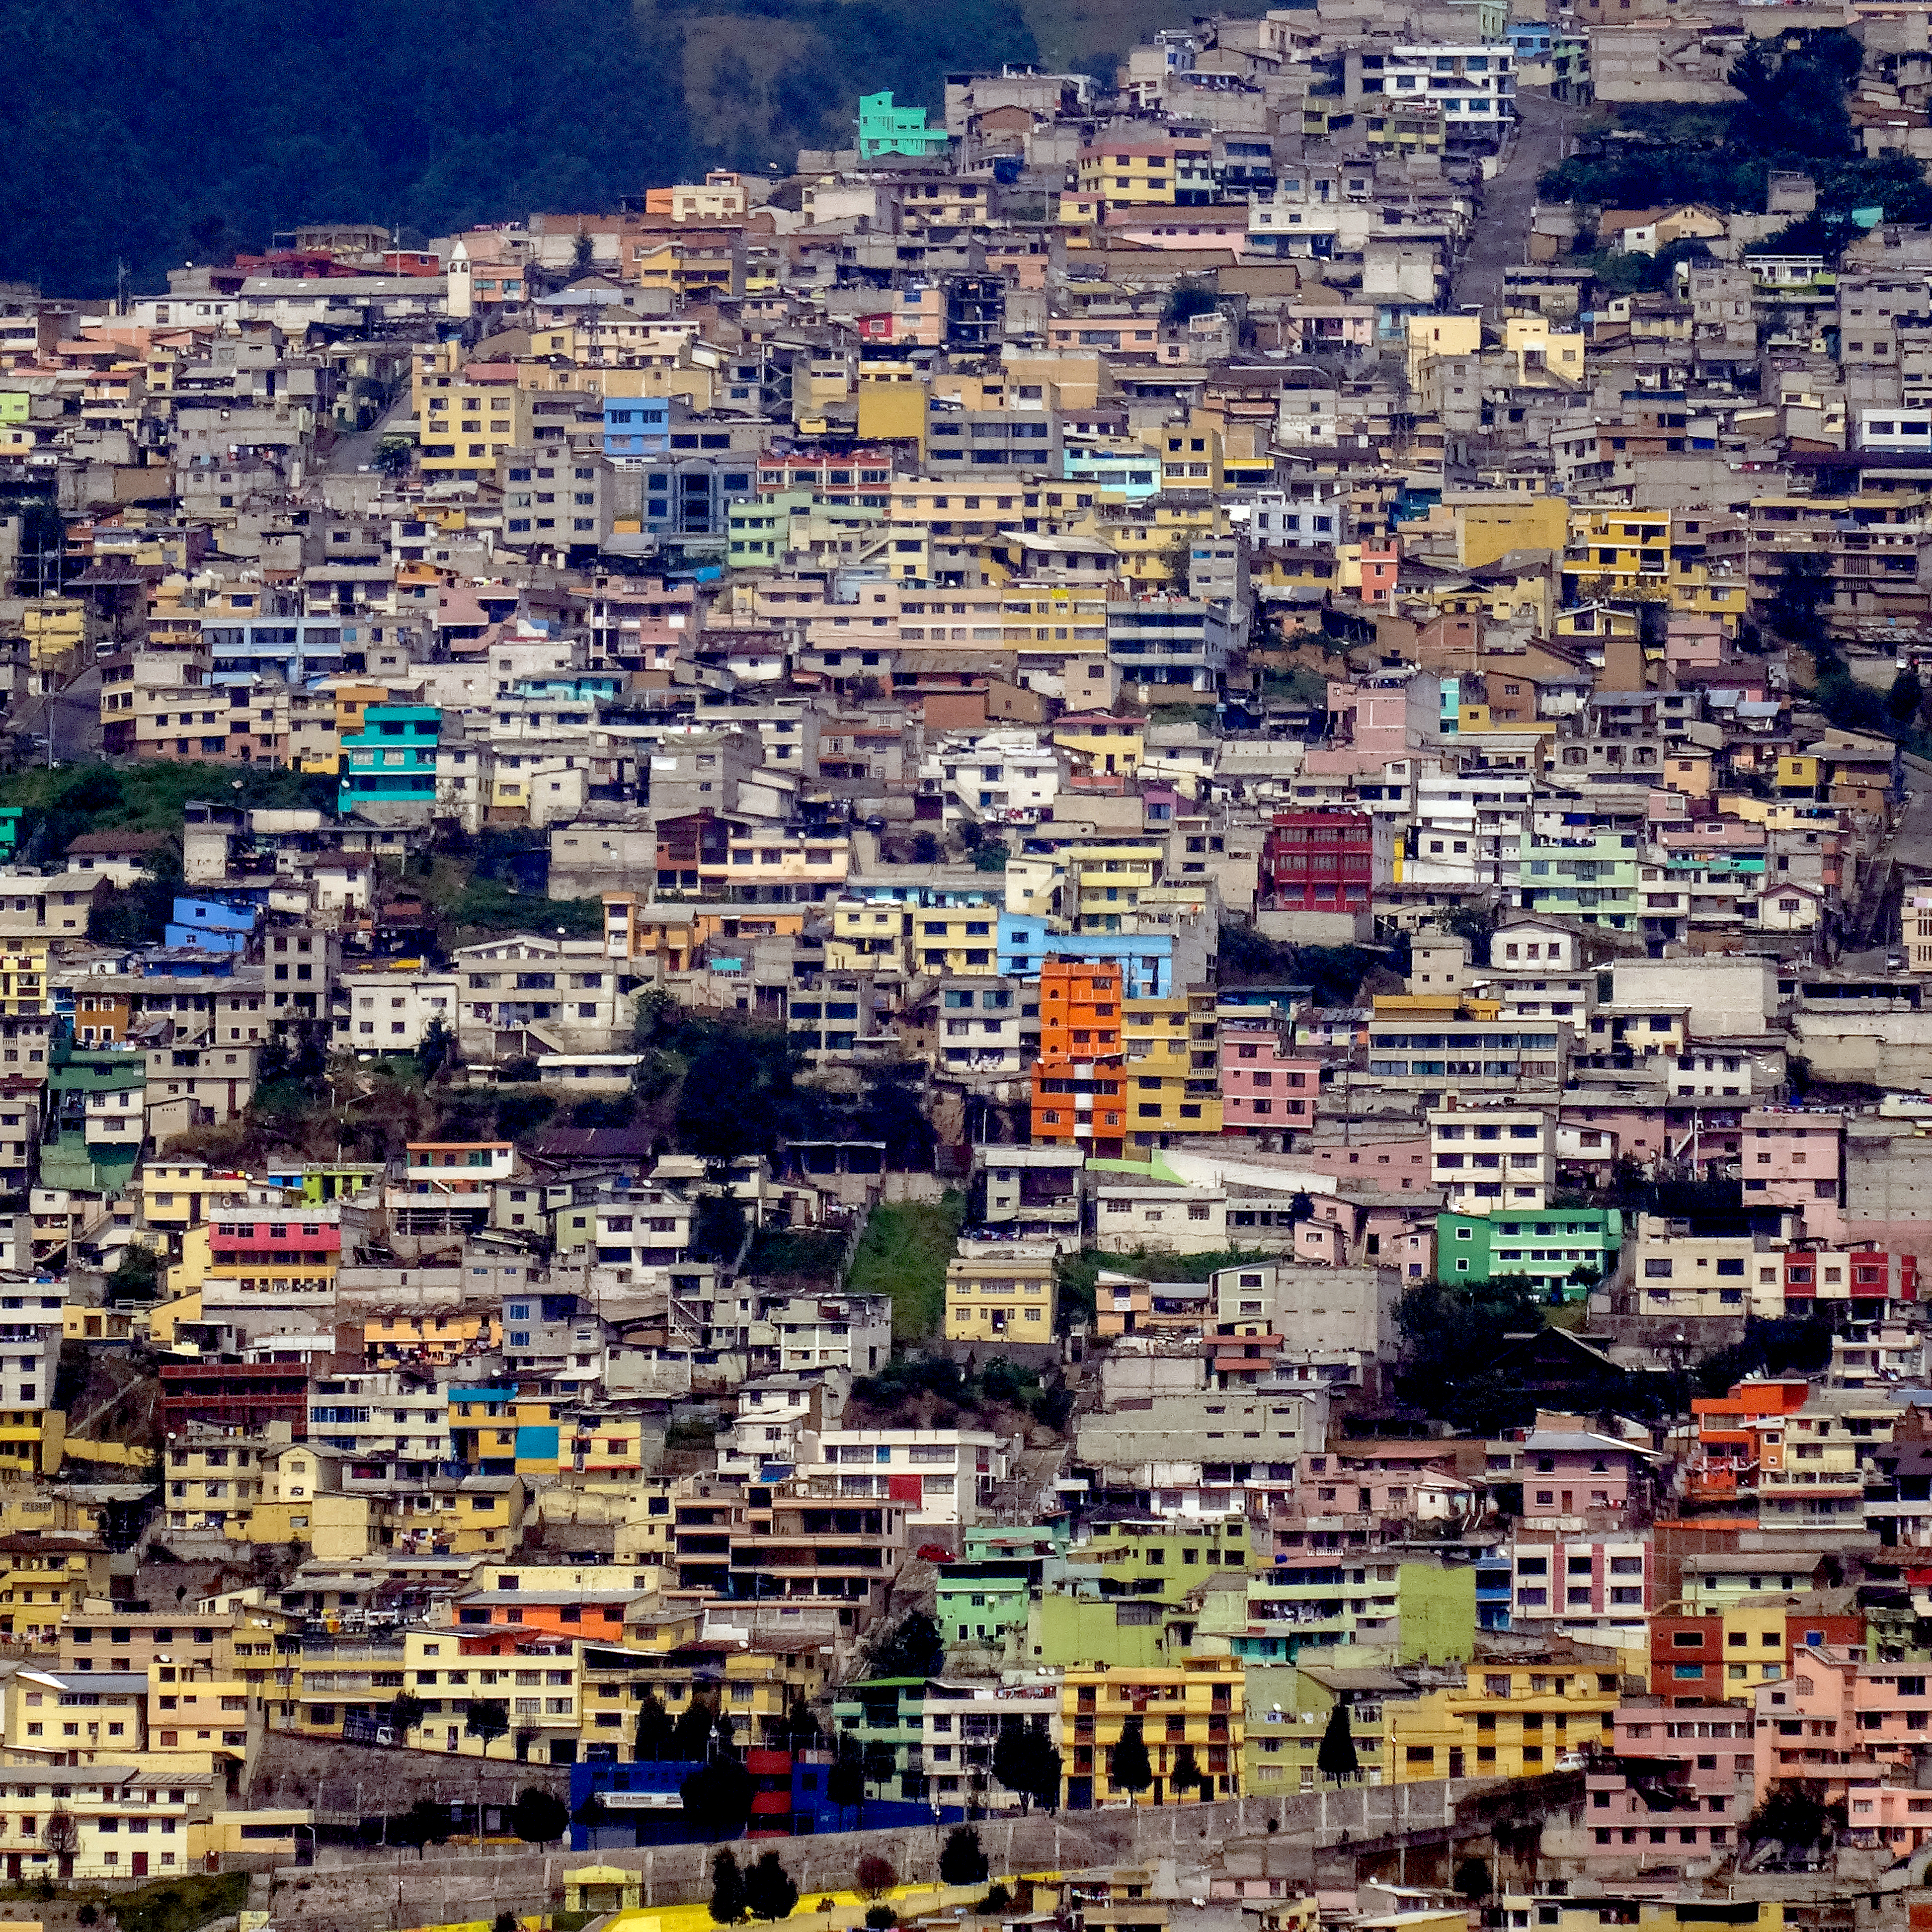 Houses on a hill in Quito, Ecuador